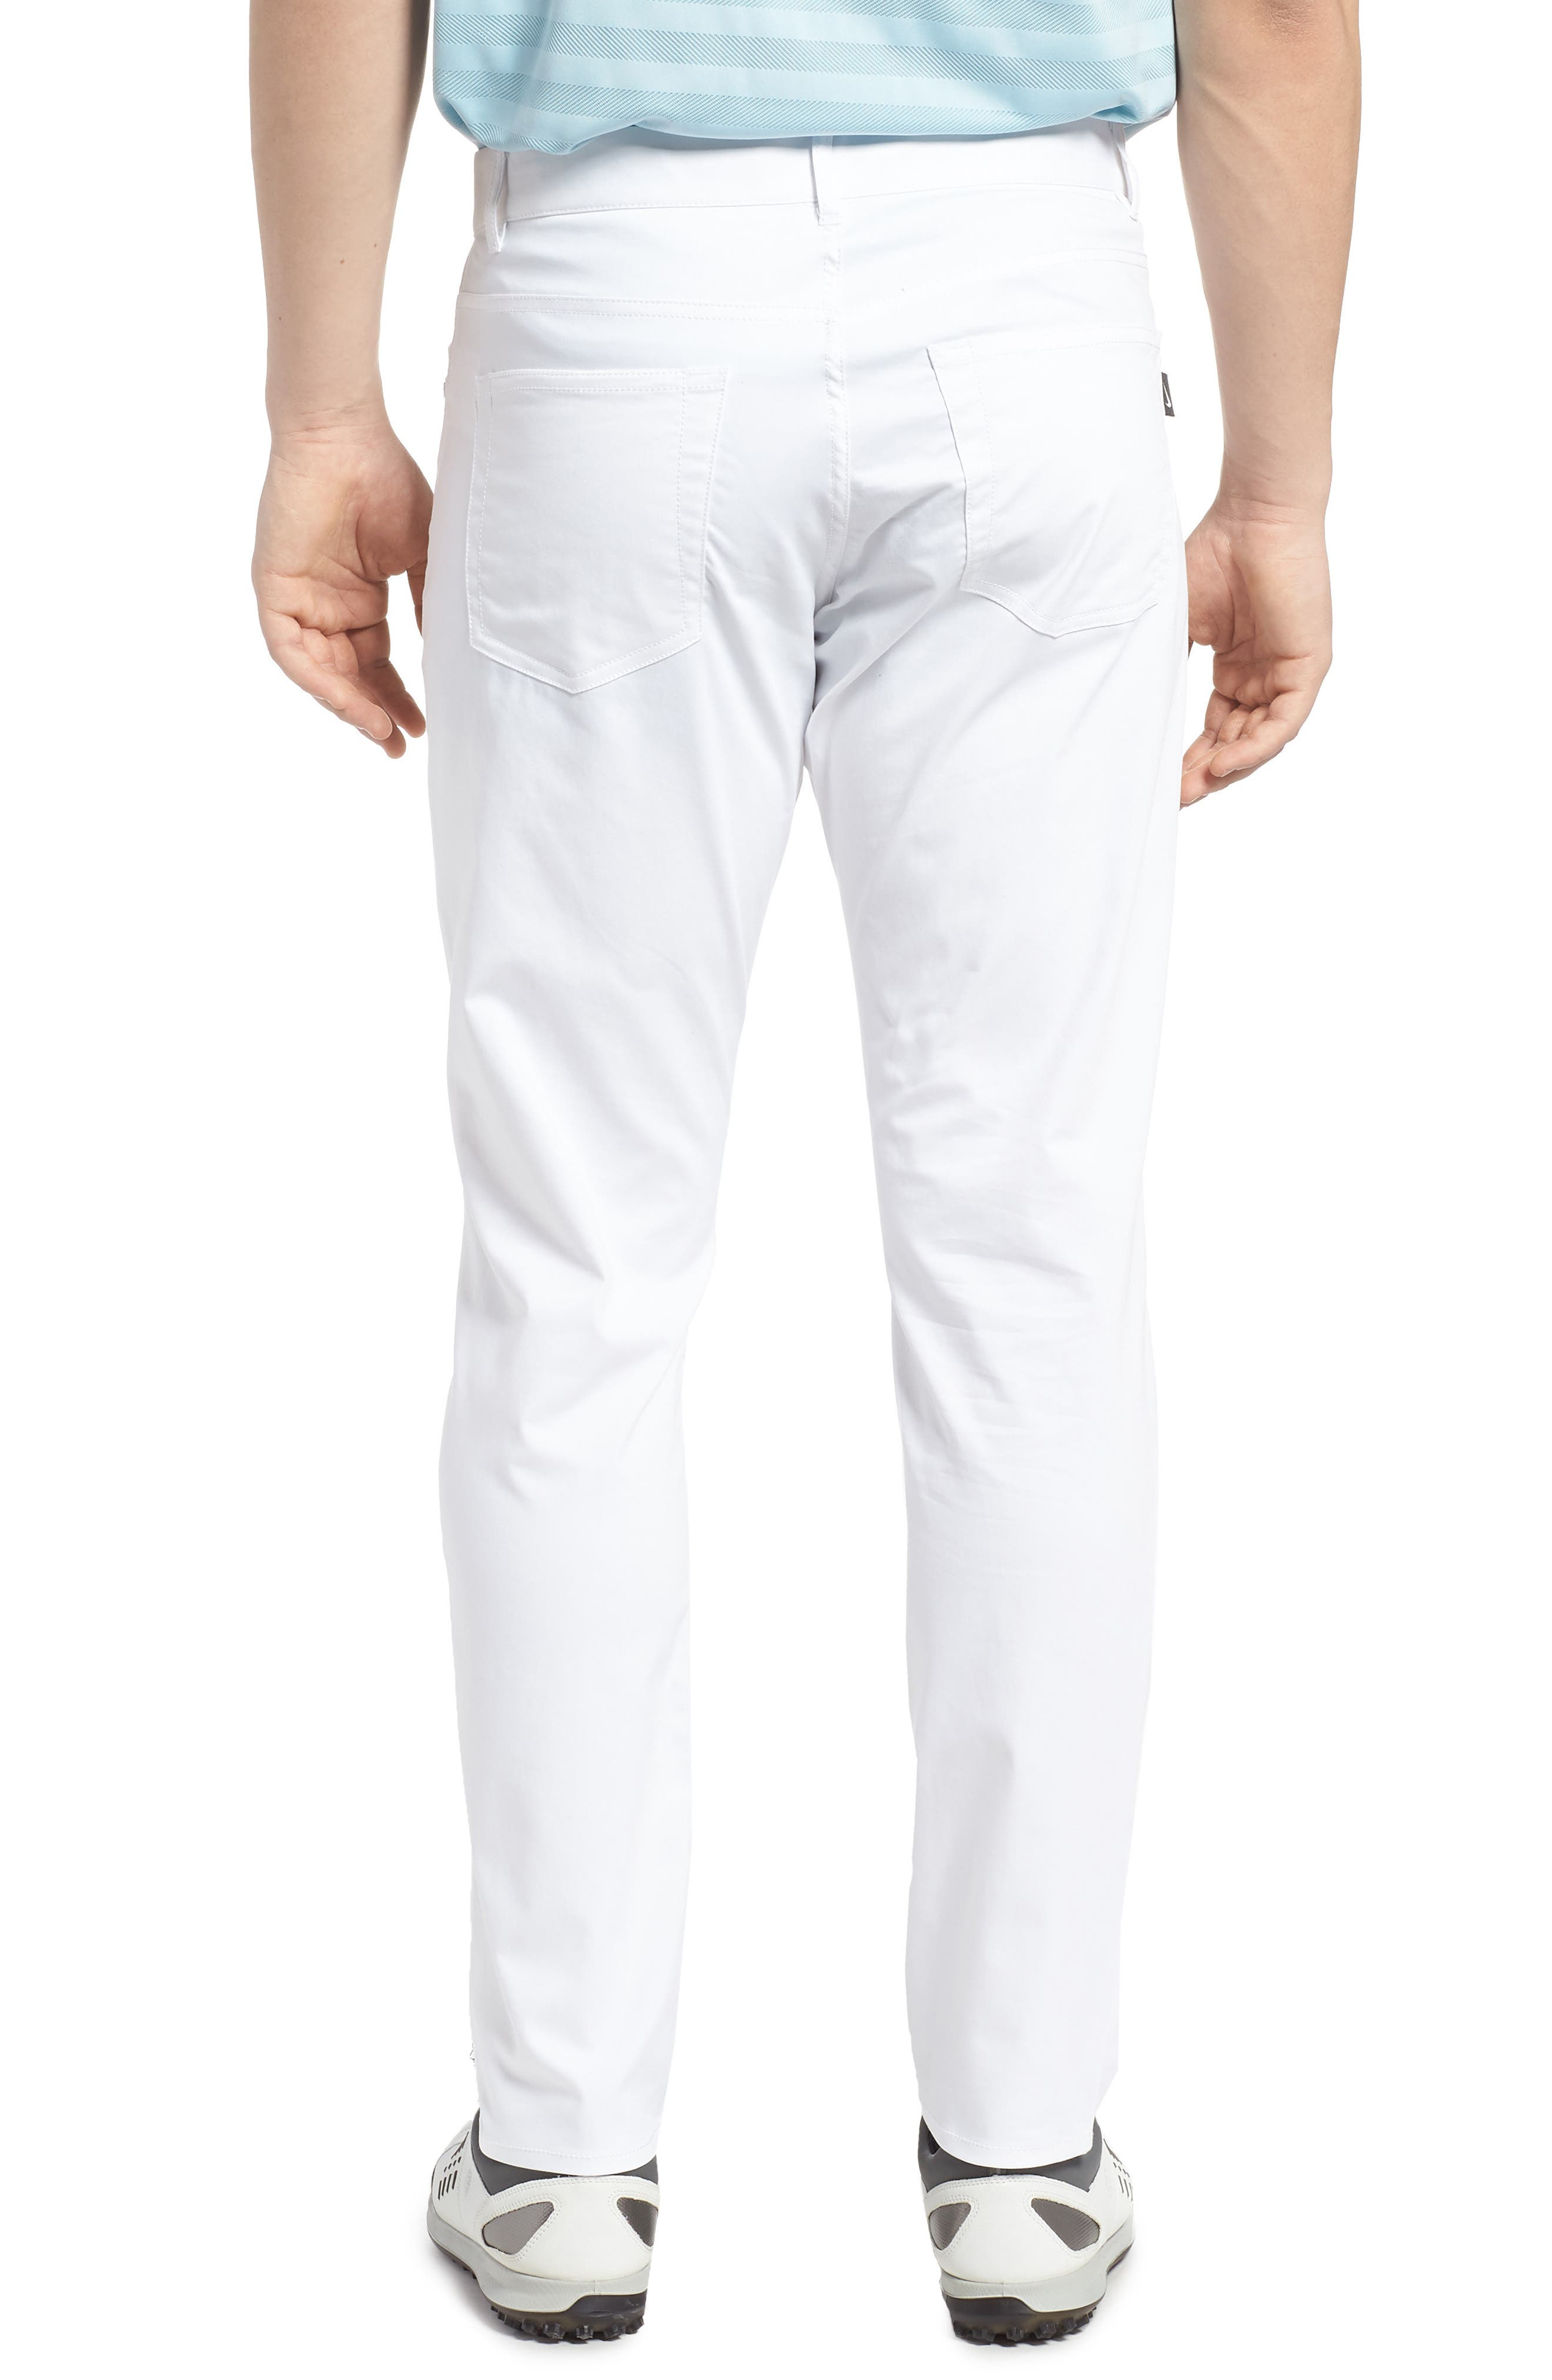 Dry Flex Slim Fit Golf Pants,                             Alternate thumbnail 2, color,                             White/ White